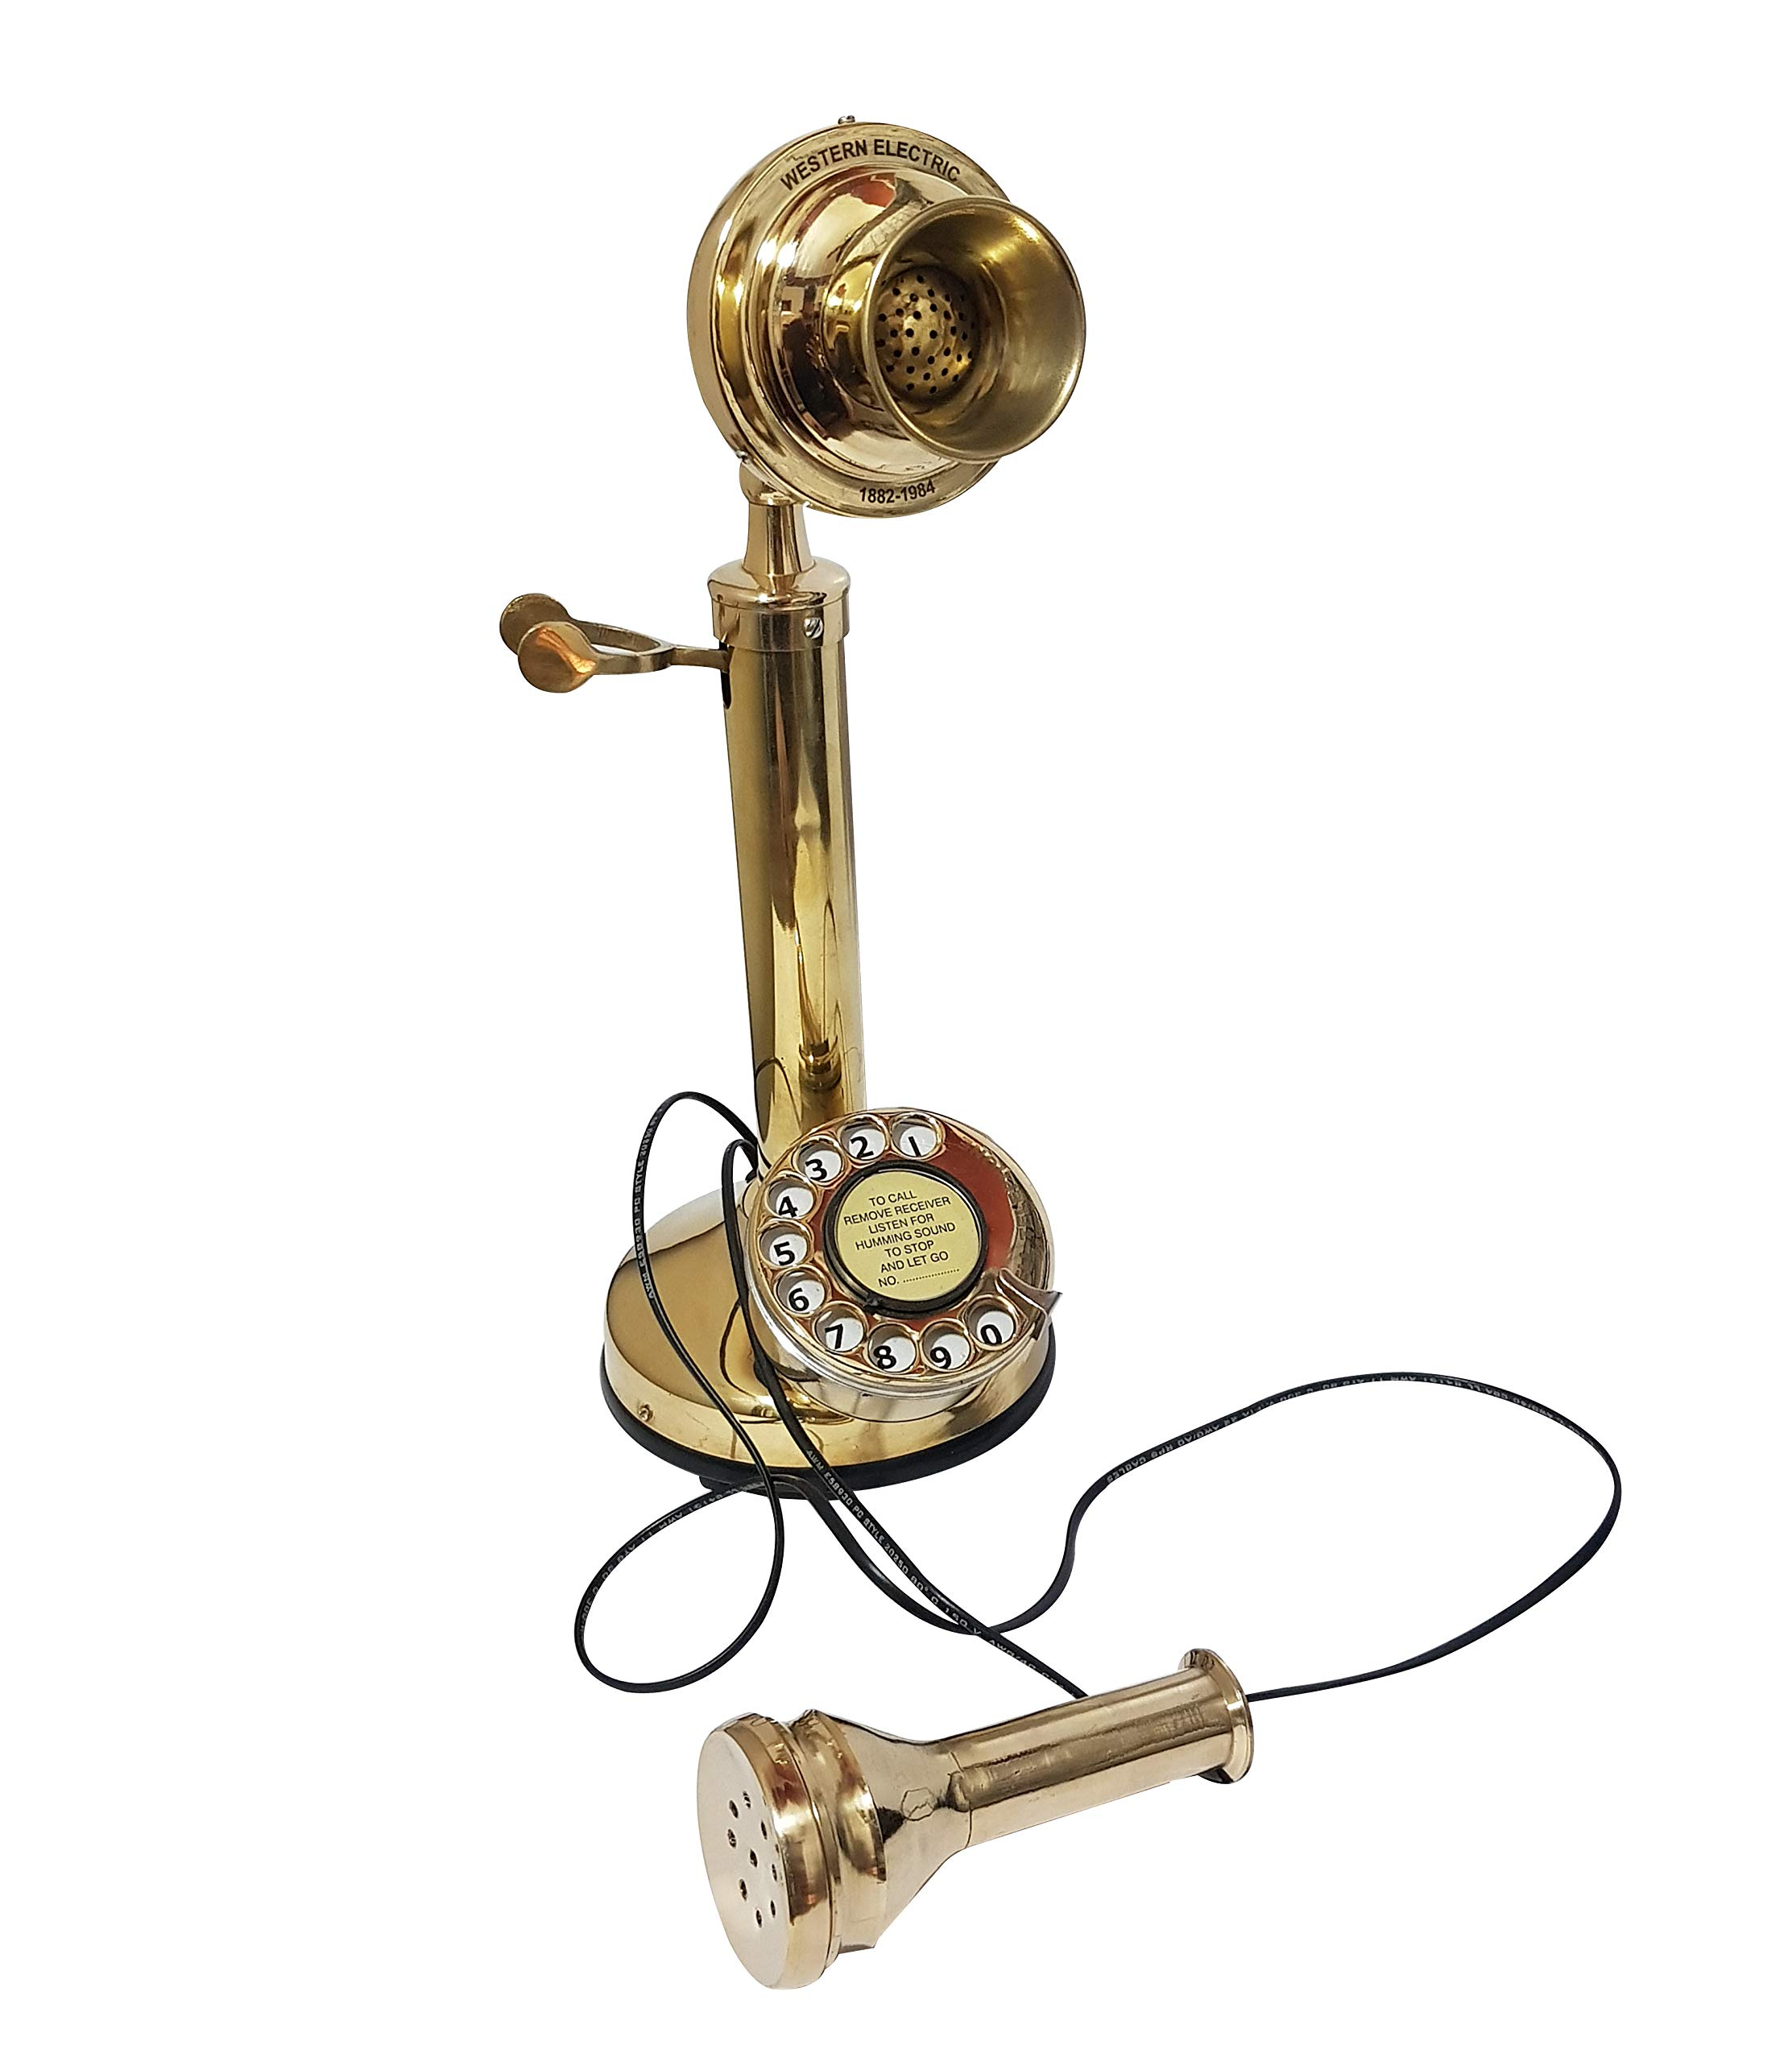 collectiblesBuy Antique Finish Working Candlestick Telephone, Old Phone with a Rotary dial by collectiblesBuy